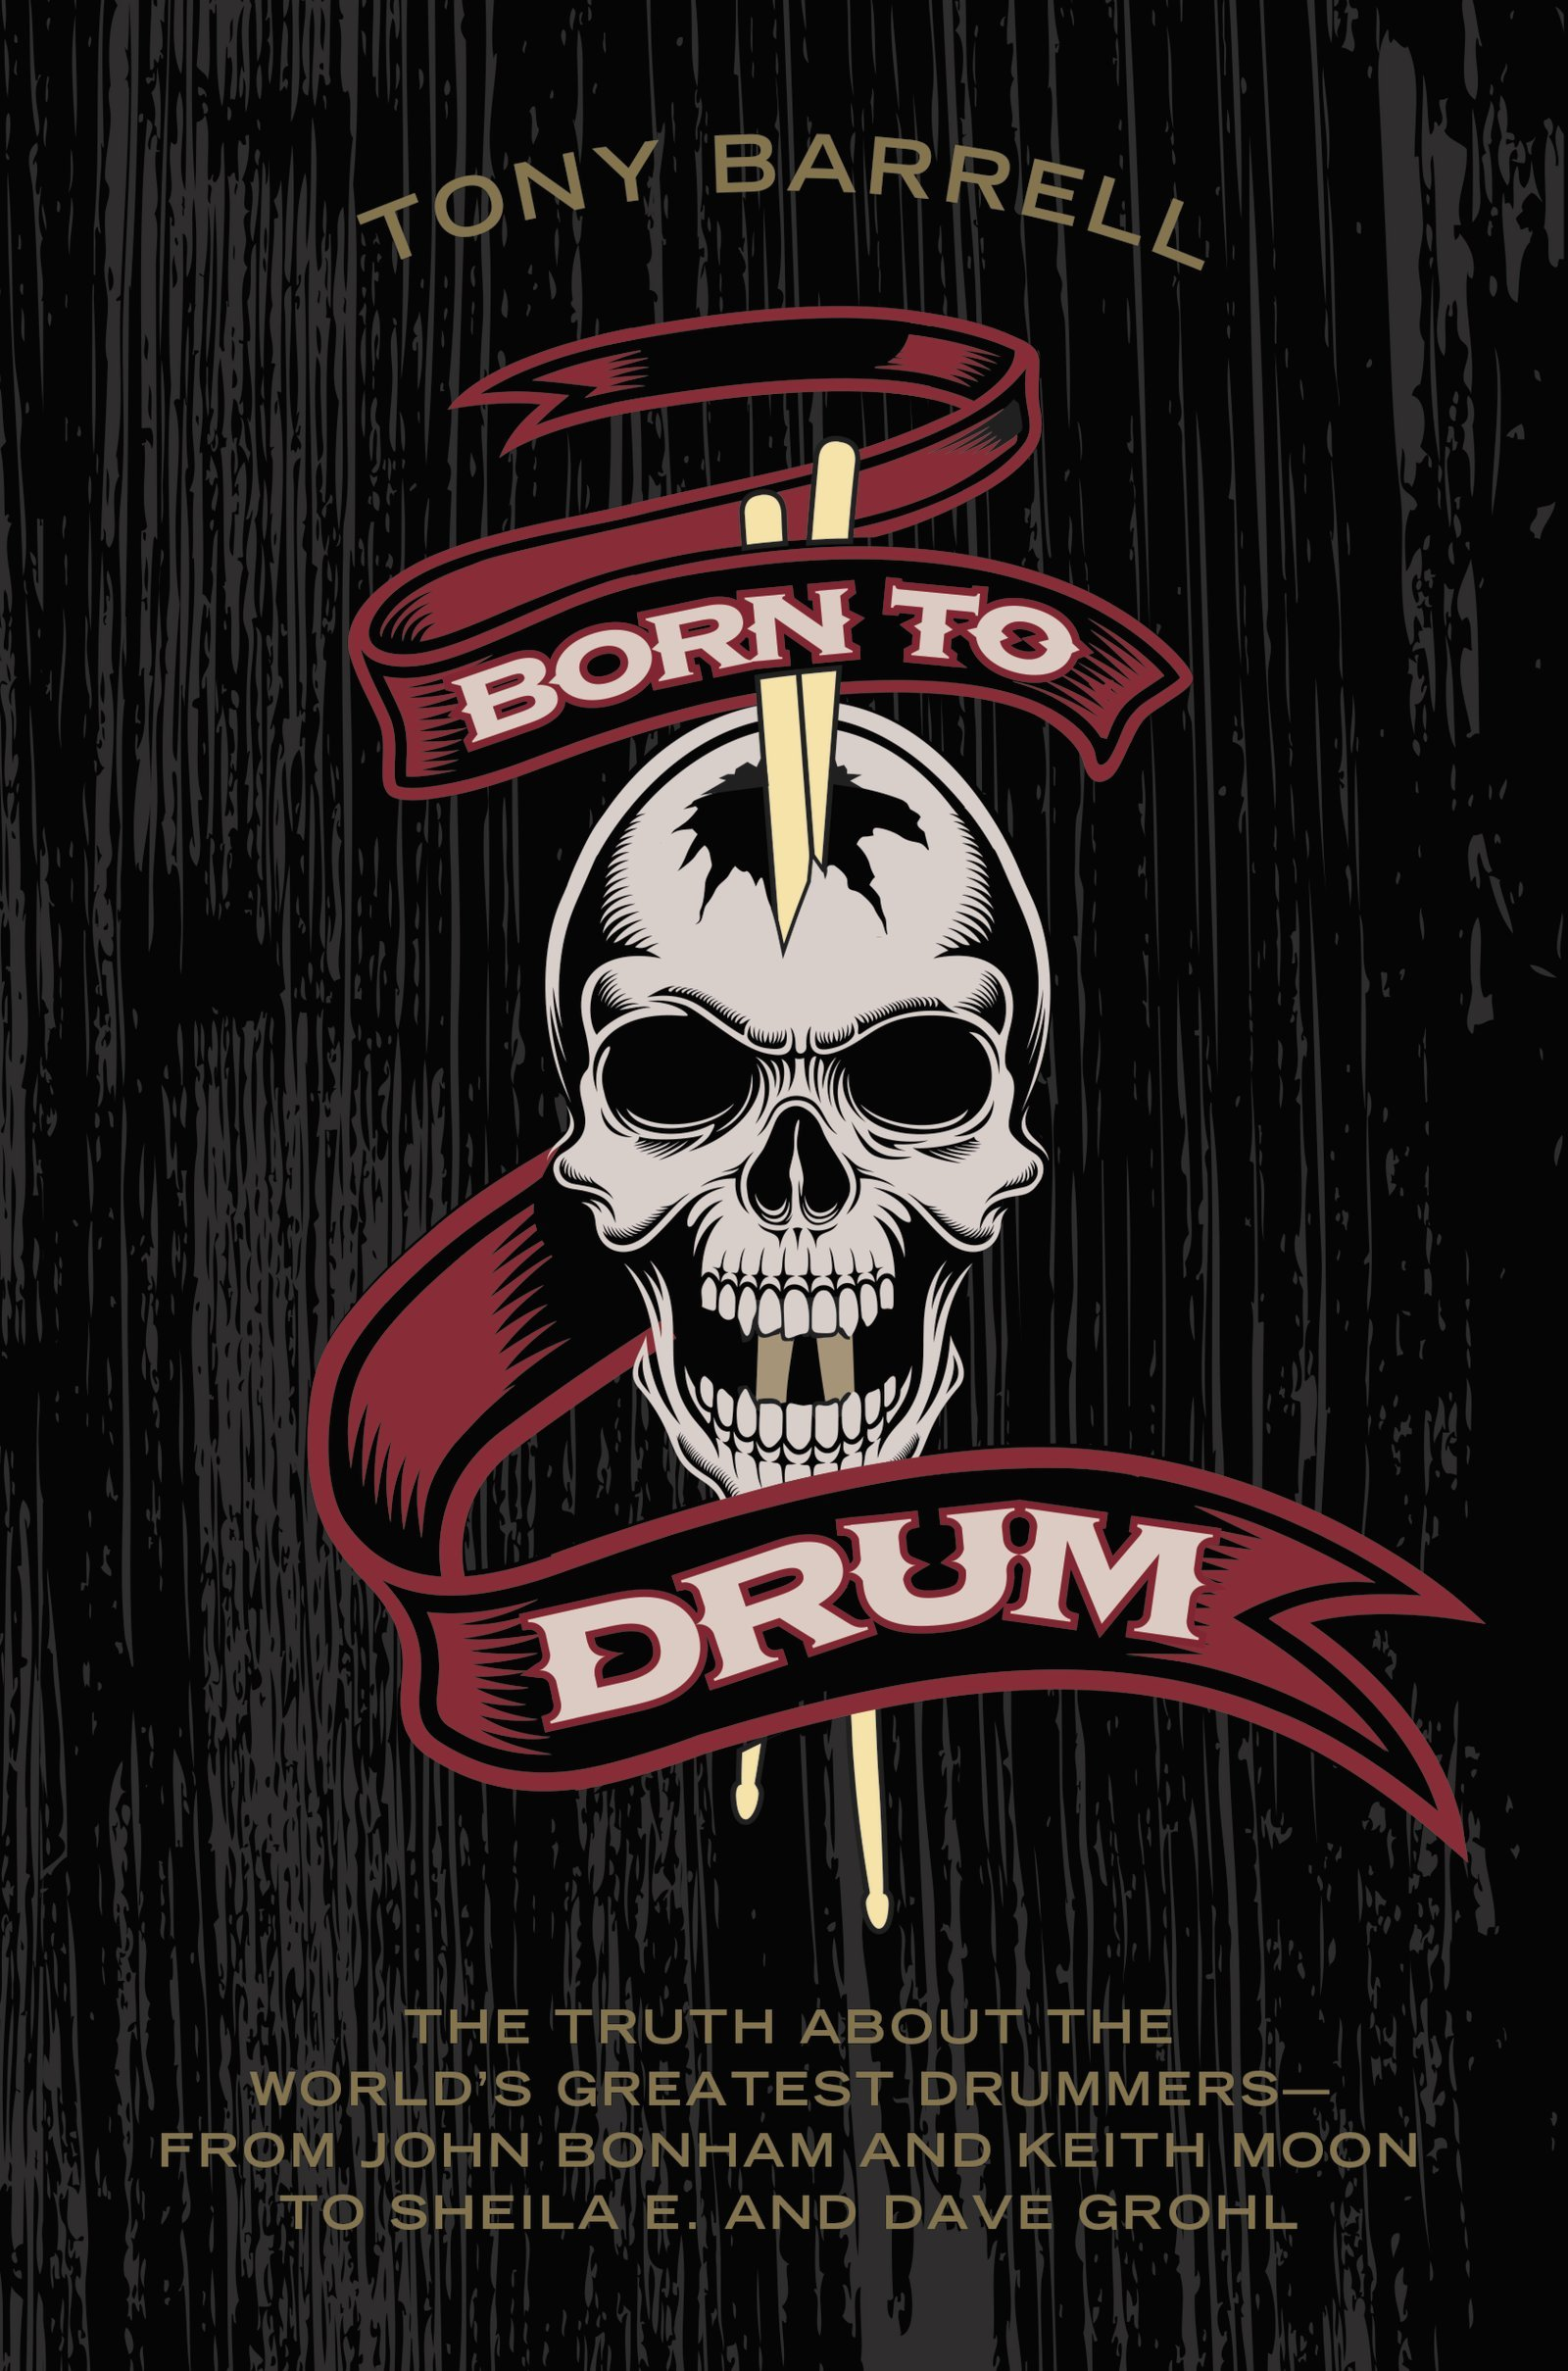 Born to Drum: The Truth About the World's Greatest Drummers--from John Bonham and Keith Moon to Sheila E. and Dave Grohl free download